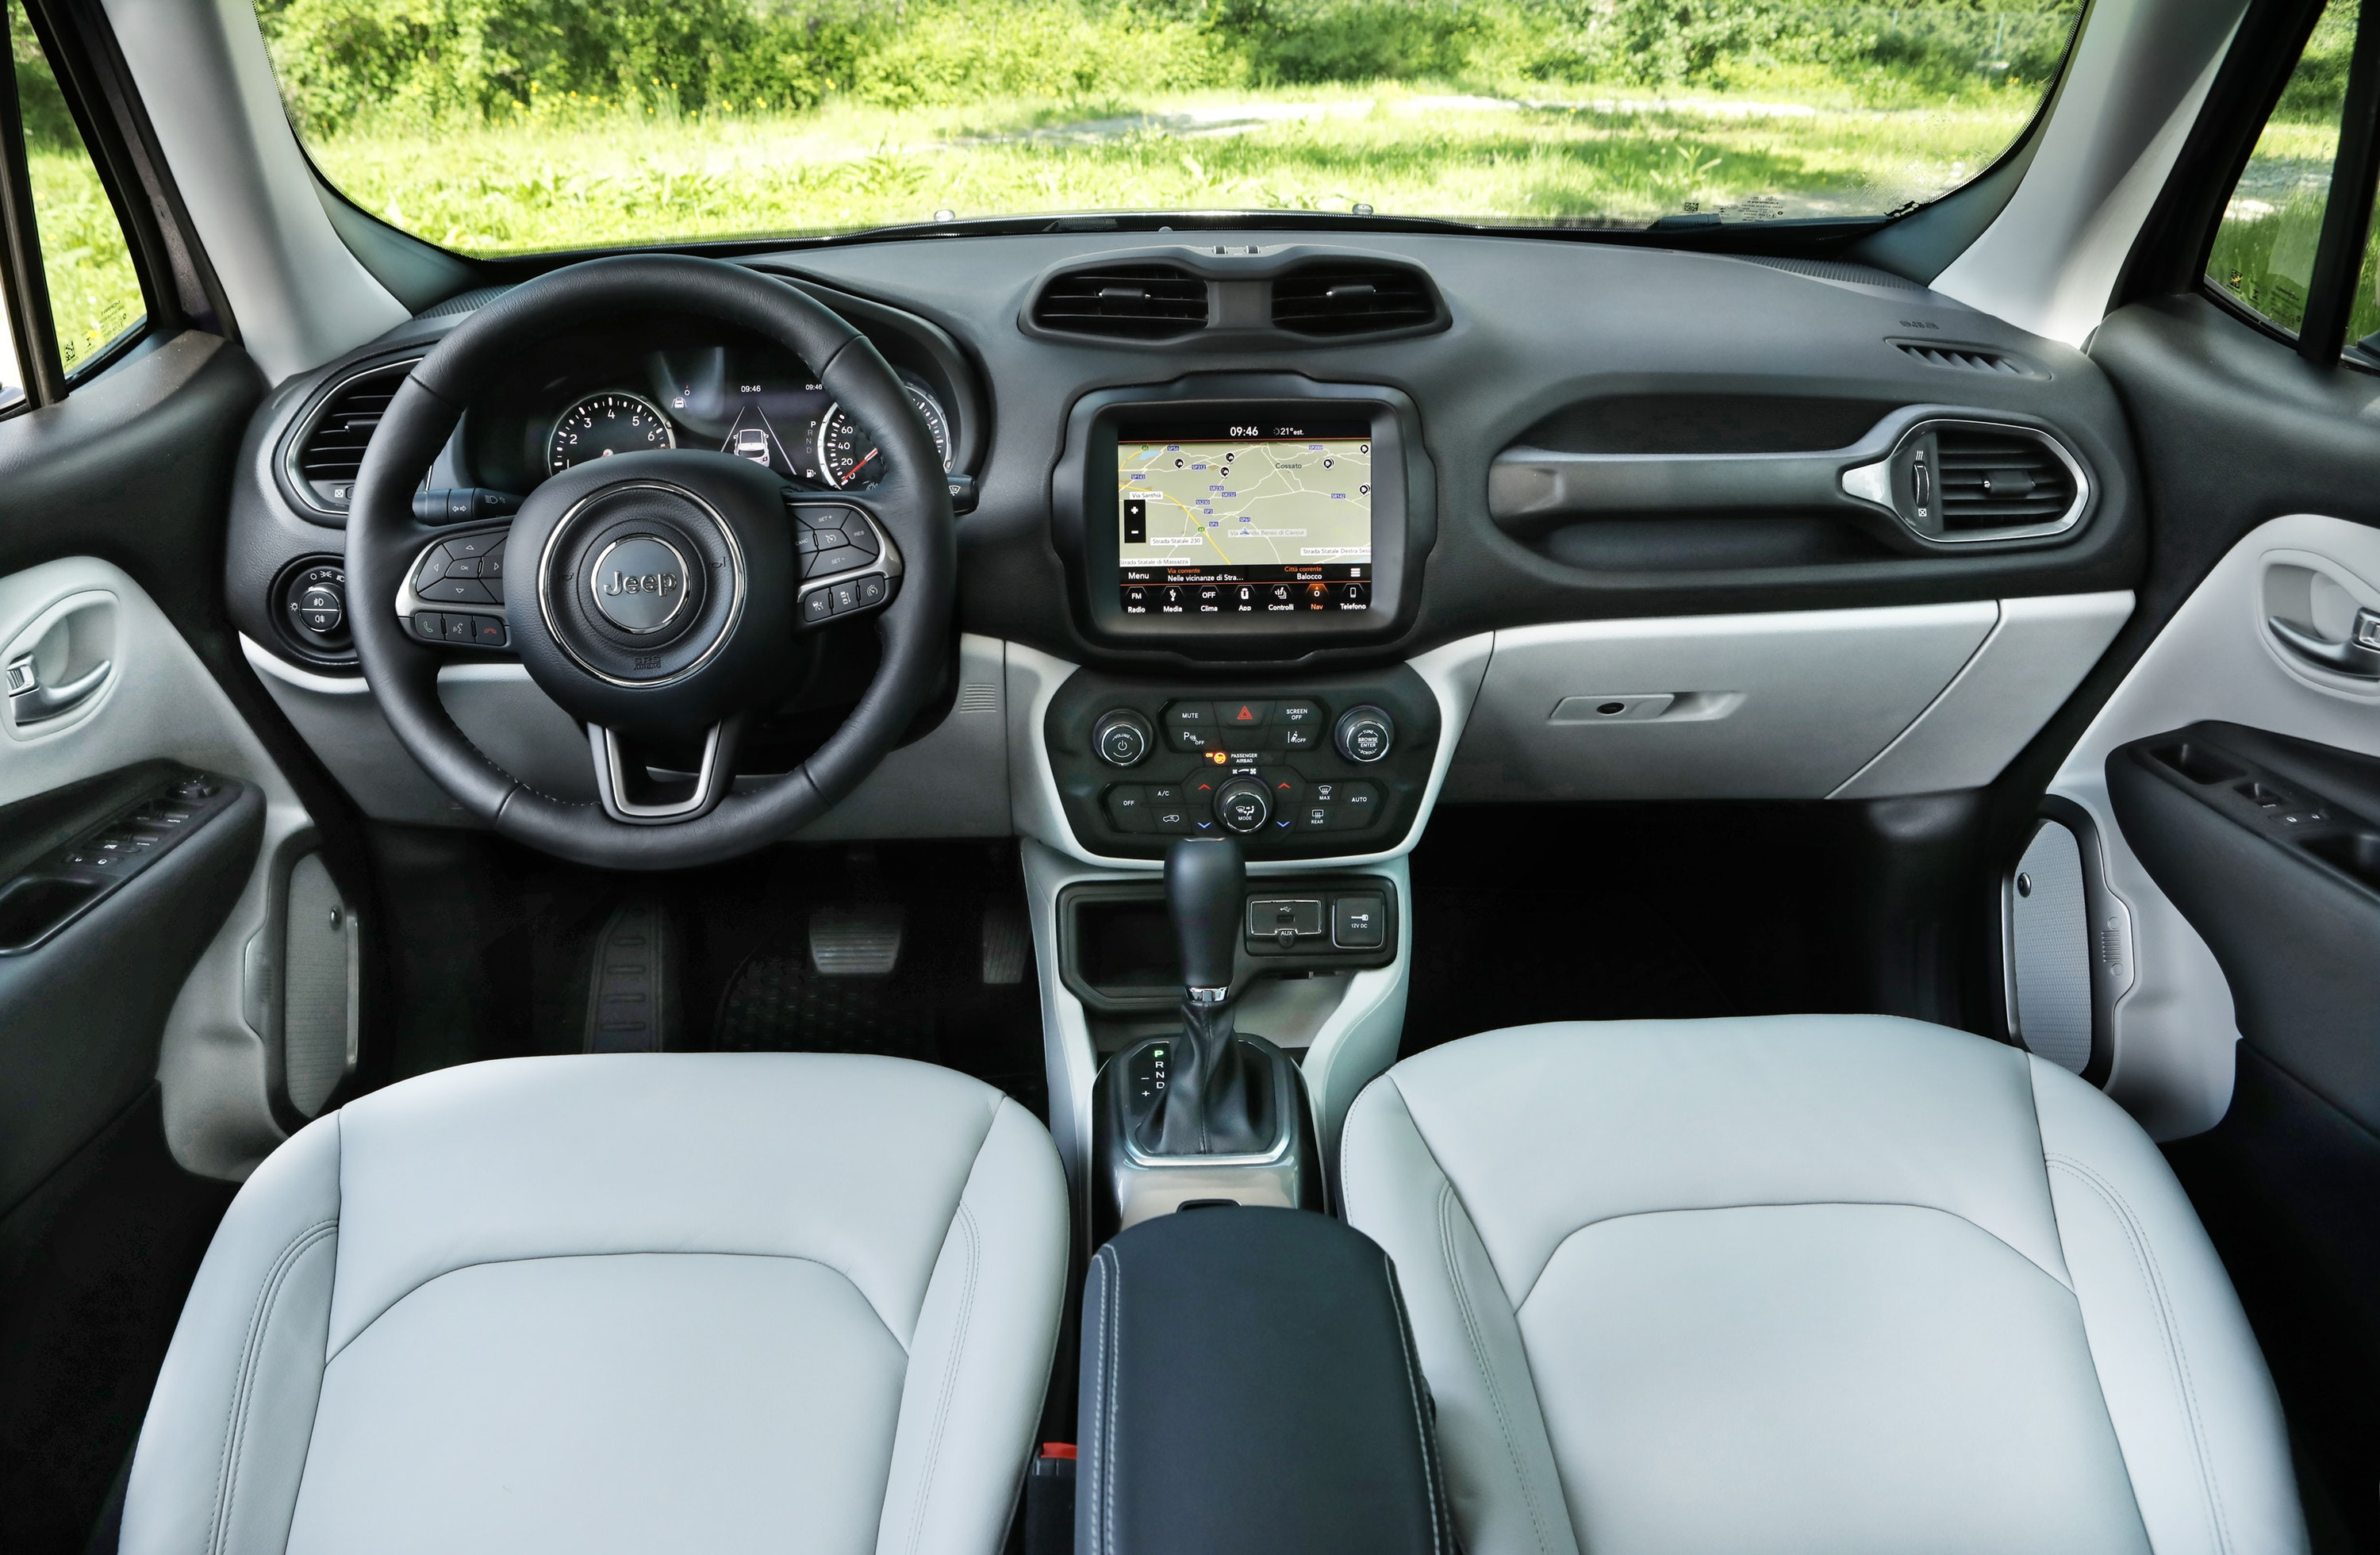 Interior of a Jeep Renegade